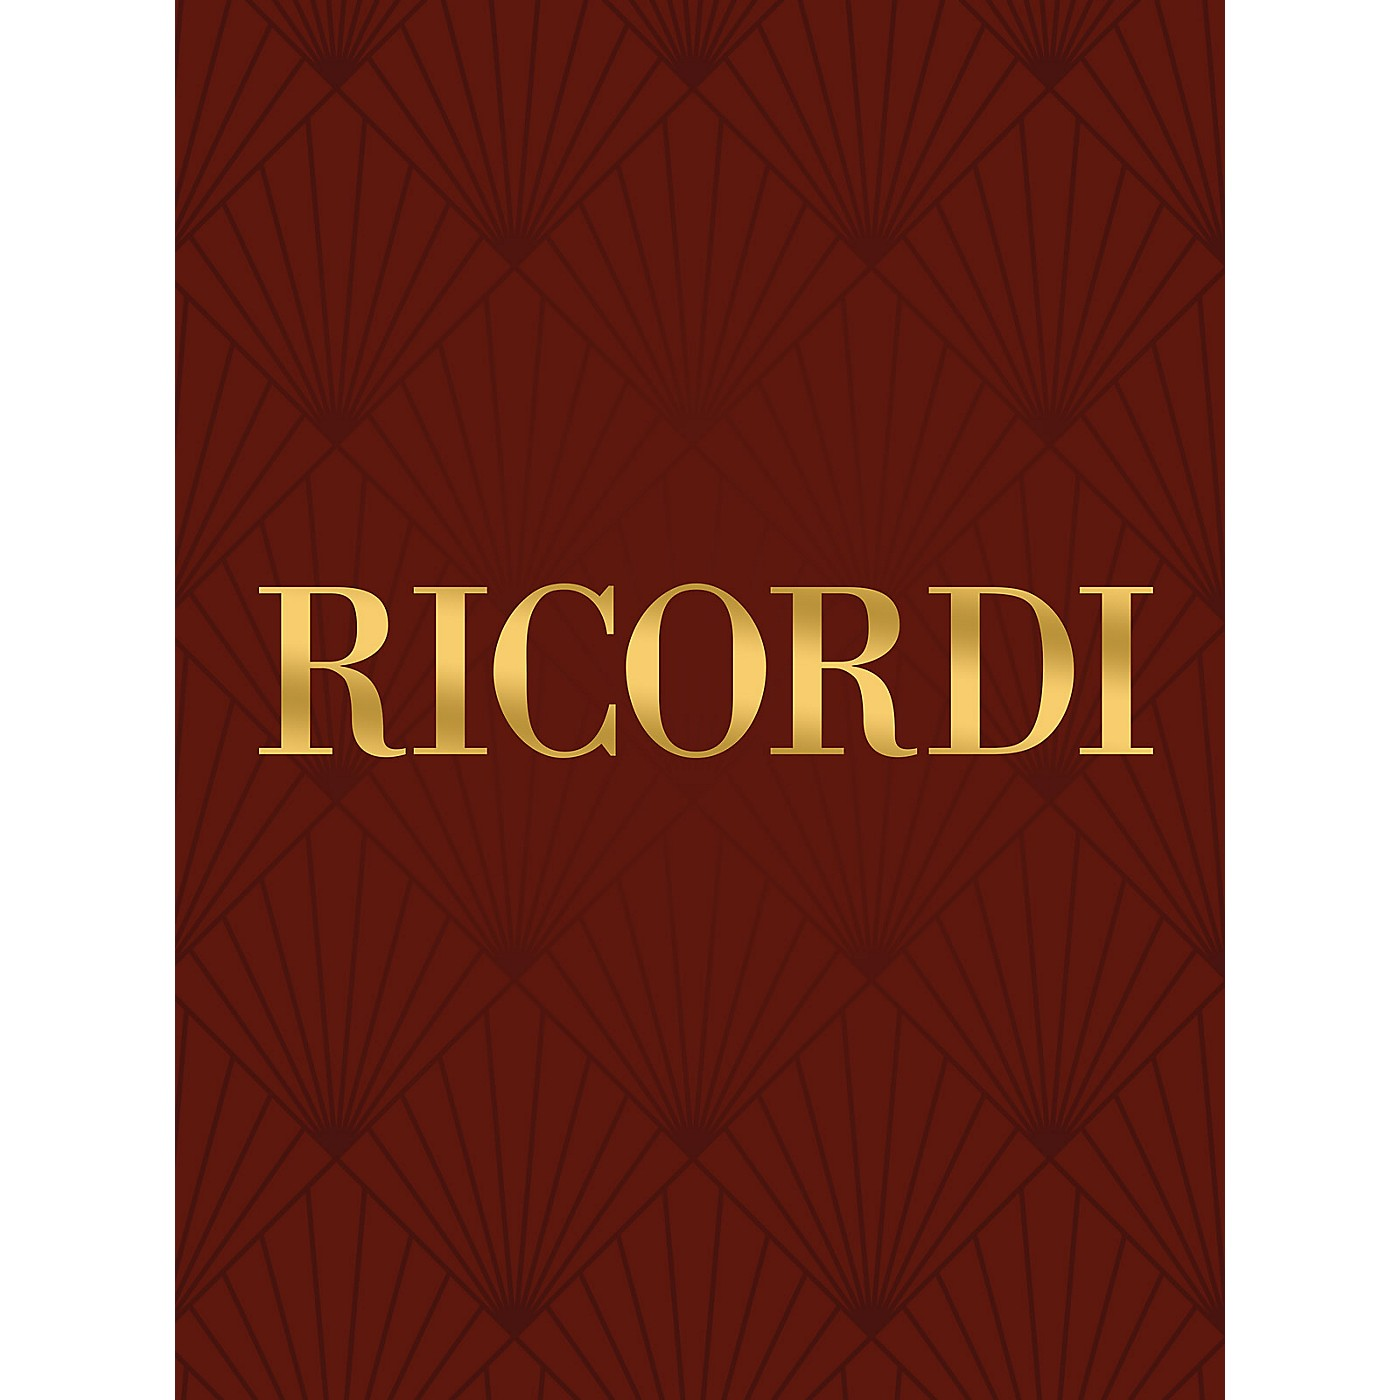 Ricordi Pets (Suite Of 8 Pieces) (Unaccompanied Clarinet) Woodwind Solo Series thumbnail